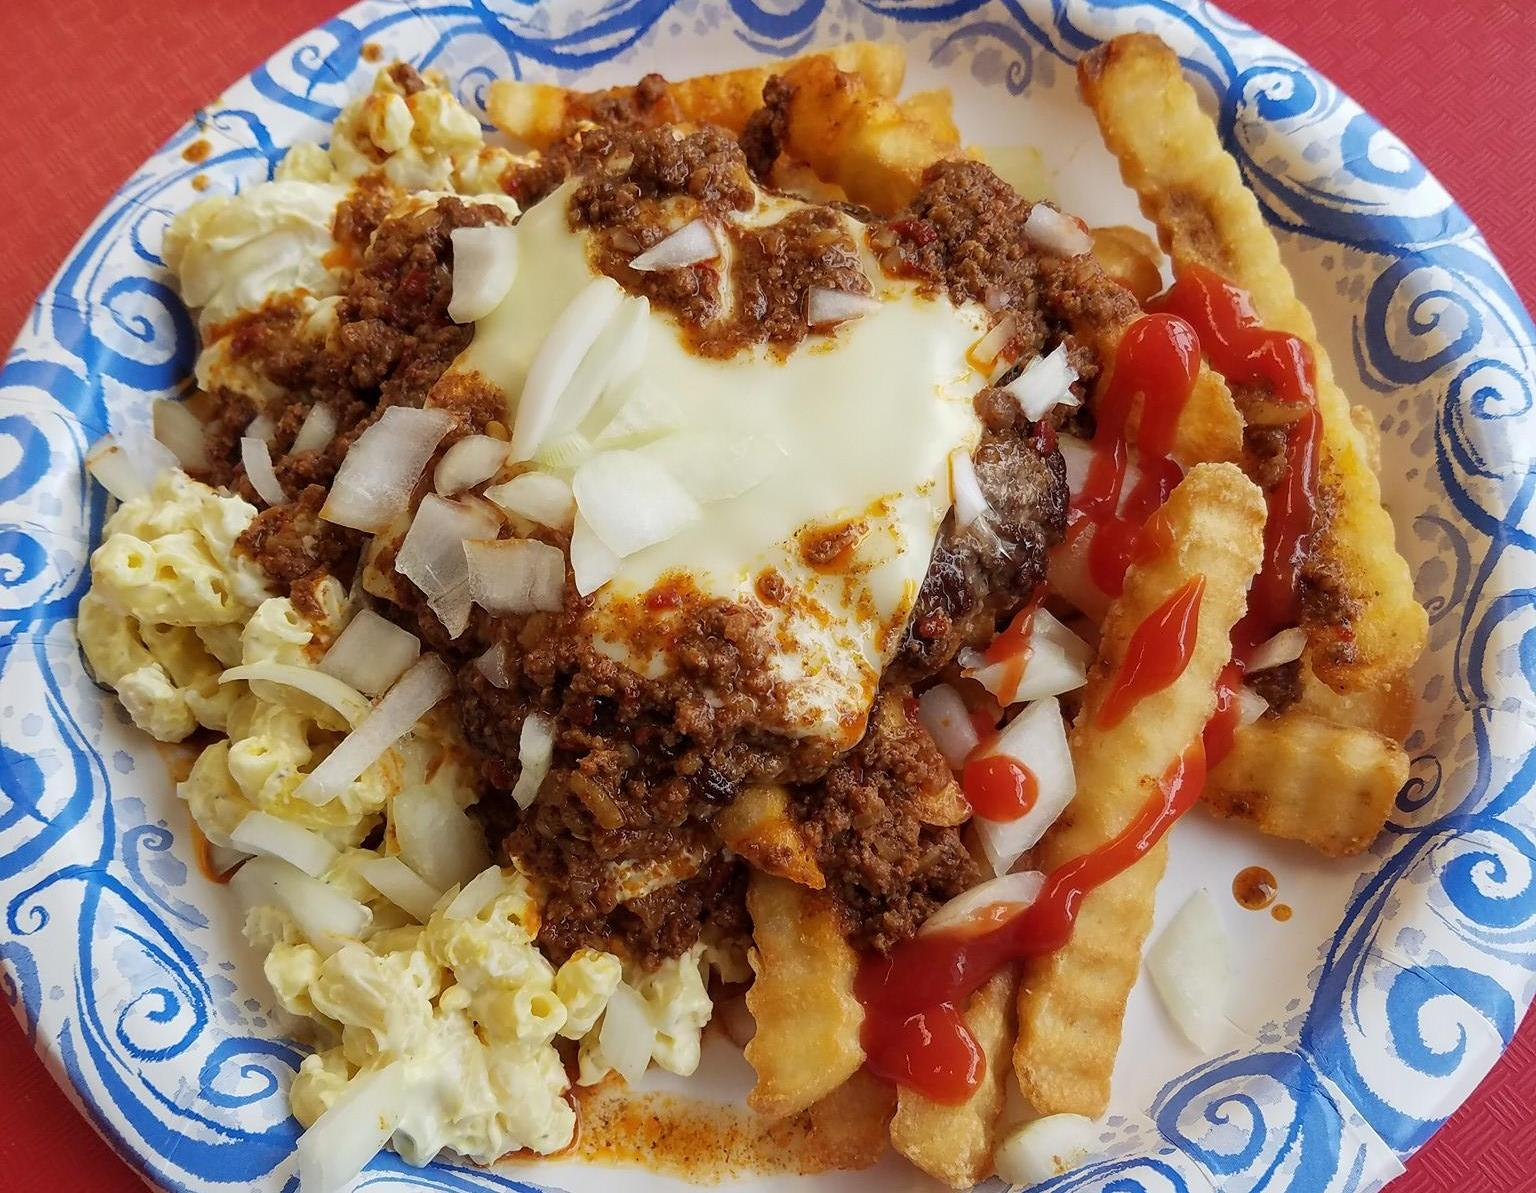 The Towne Grille offers a Towne Plate, similar to Rochester's famous Garbage plate. (The Towne Grille)